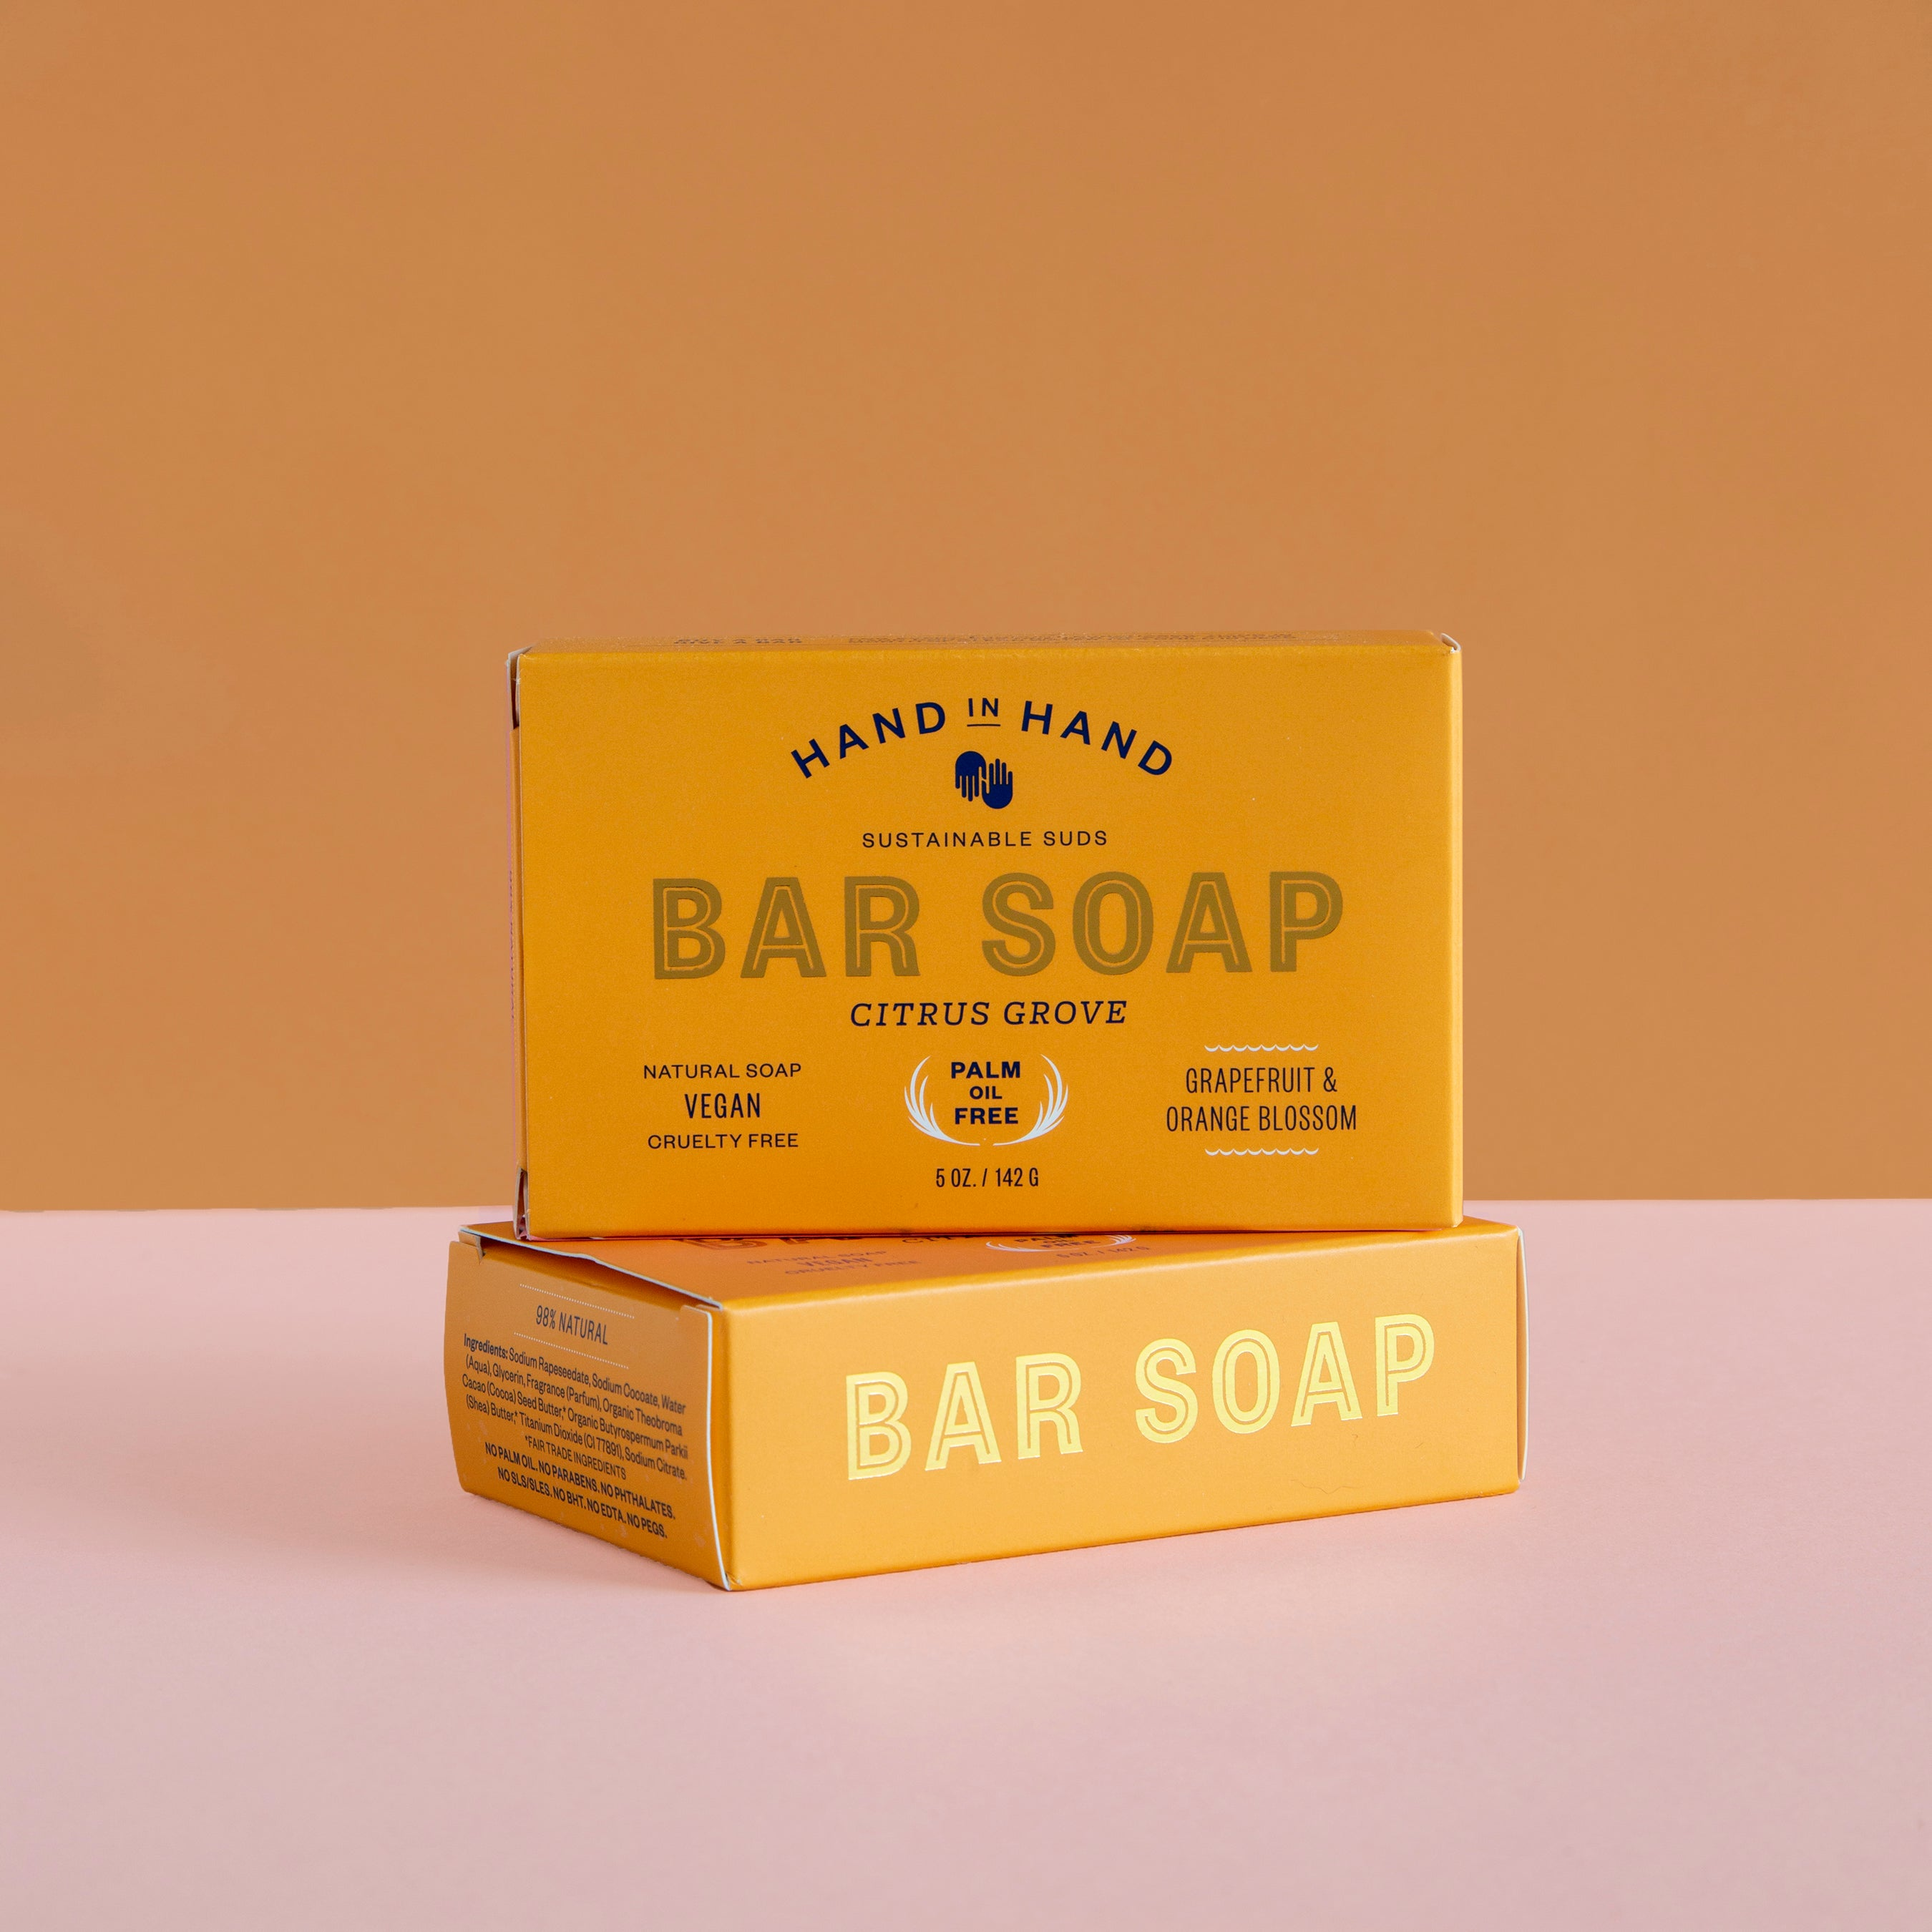 CITRUS GROVE BAR SOAP